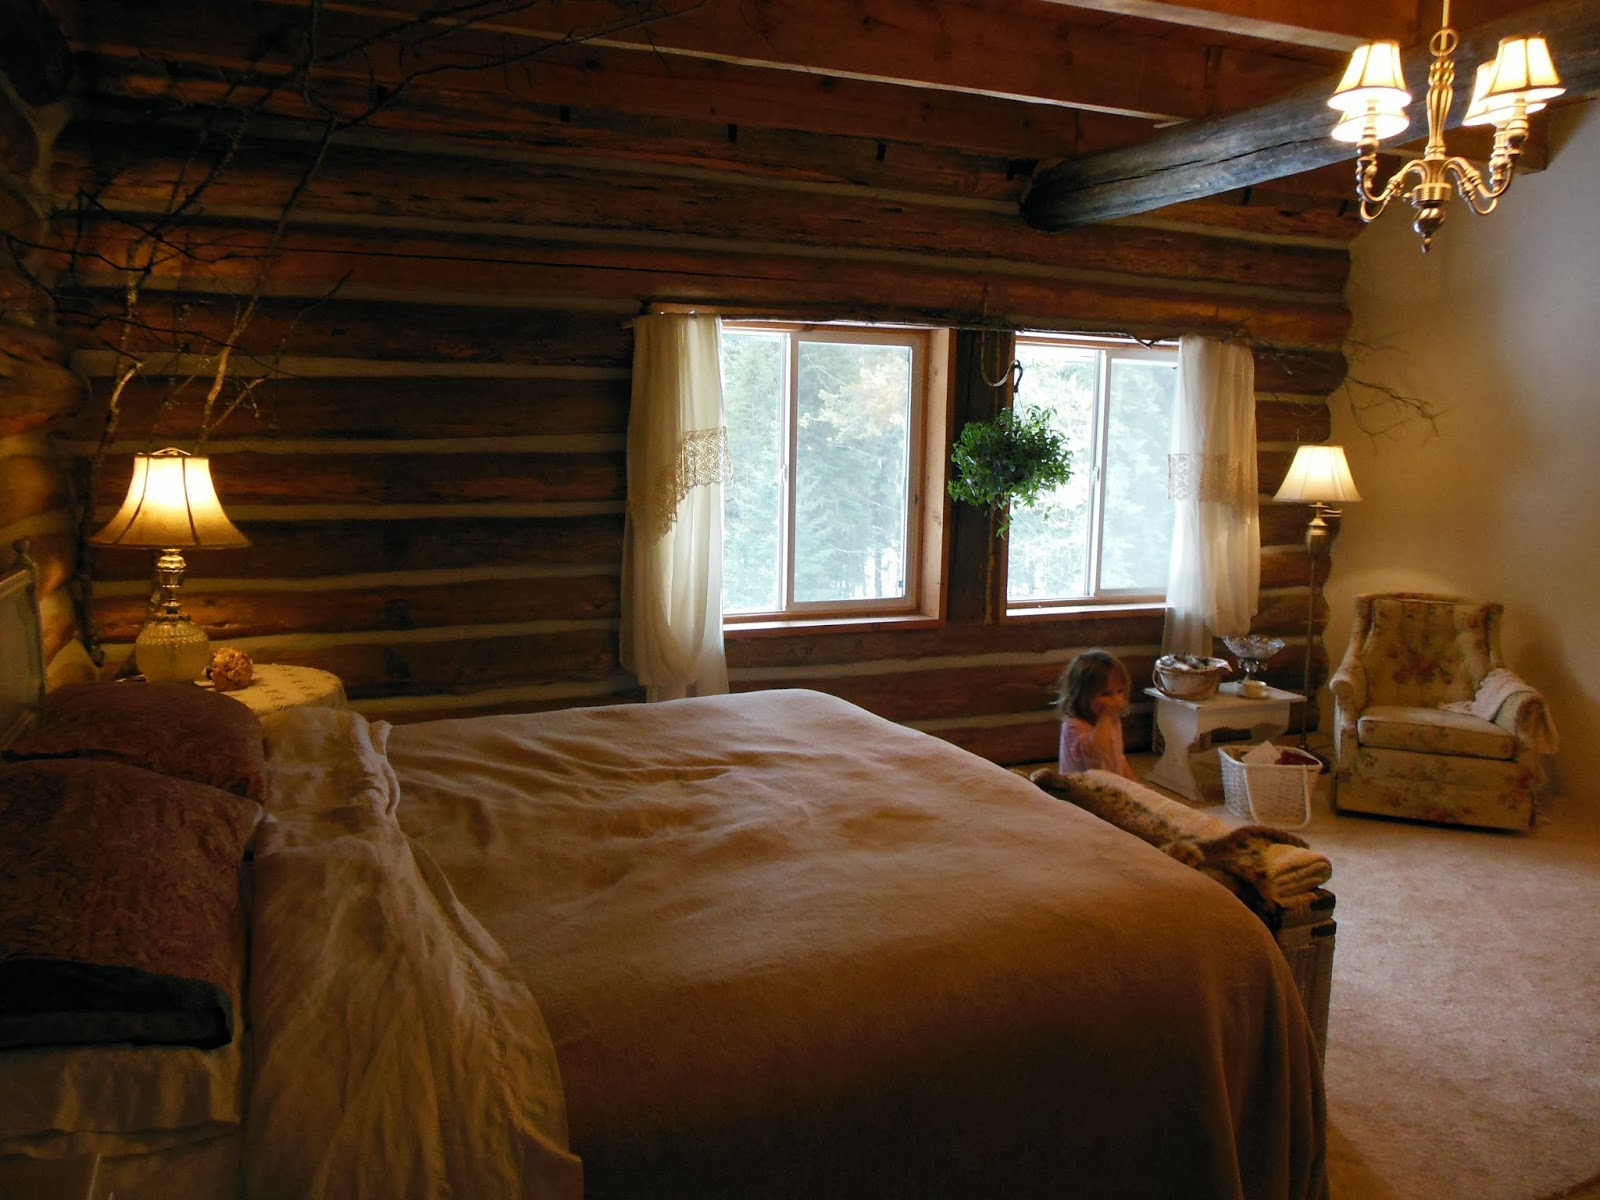 Life at providence lodge log home tour part 7 master bedroom for Log home master bedrooms